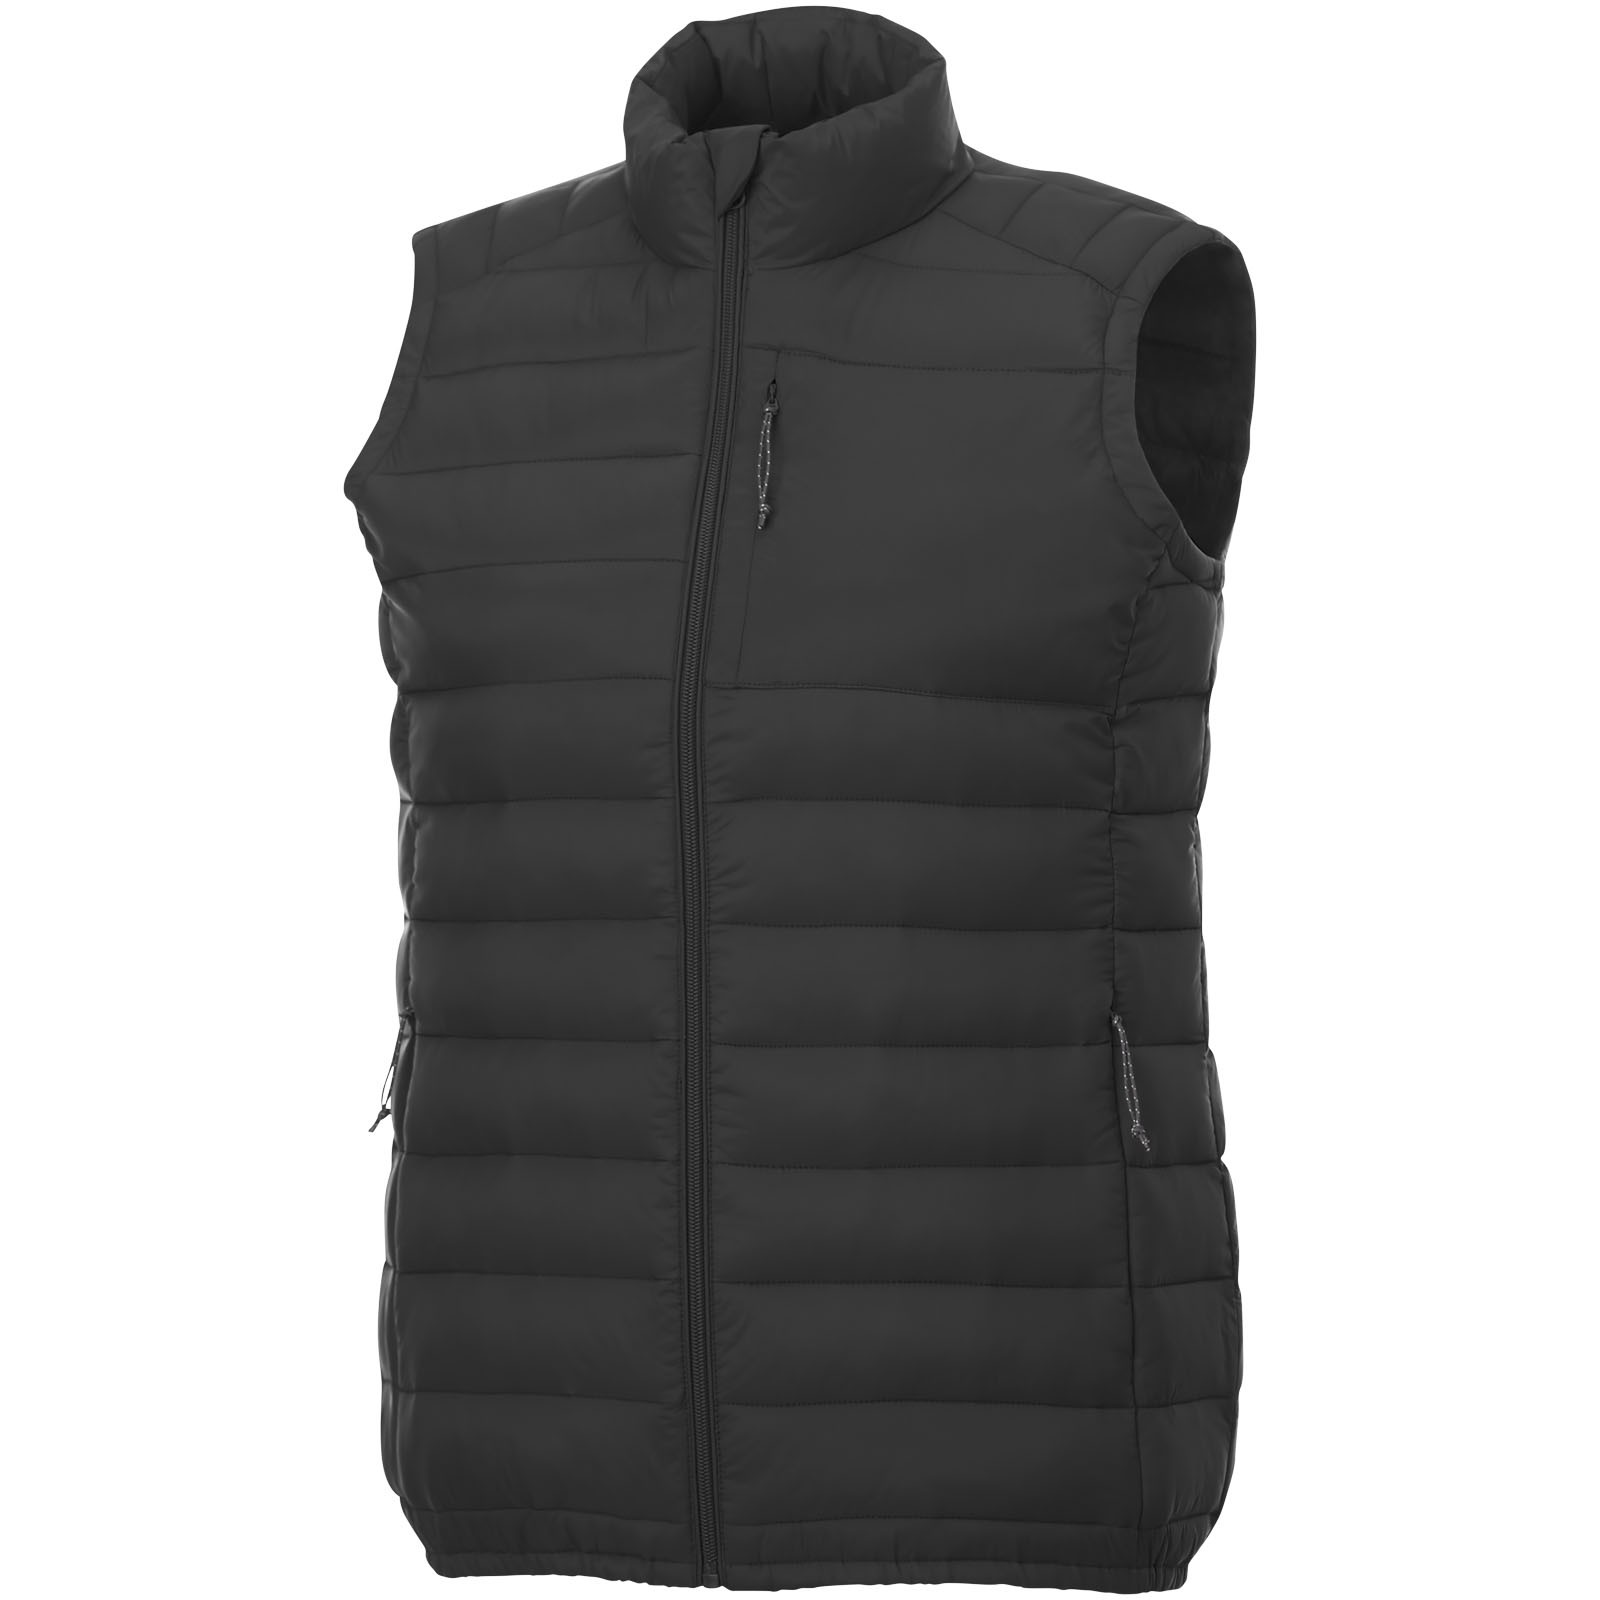 Pallas women's insulated bodywarmer - Solid Black / L